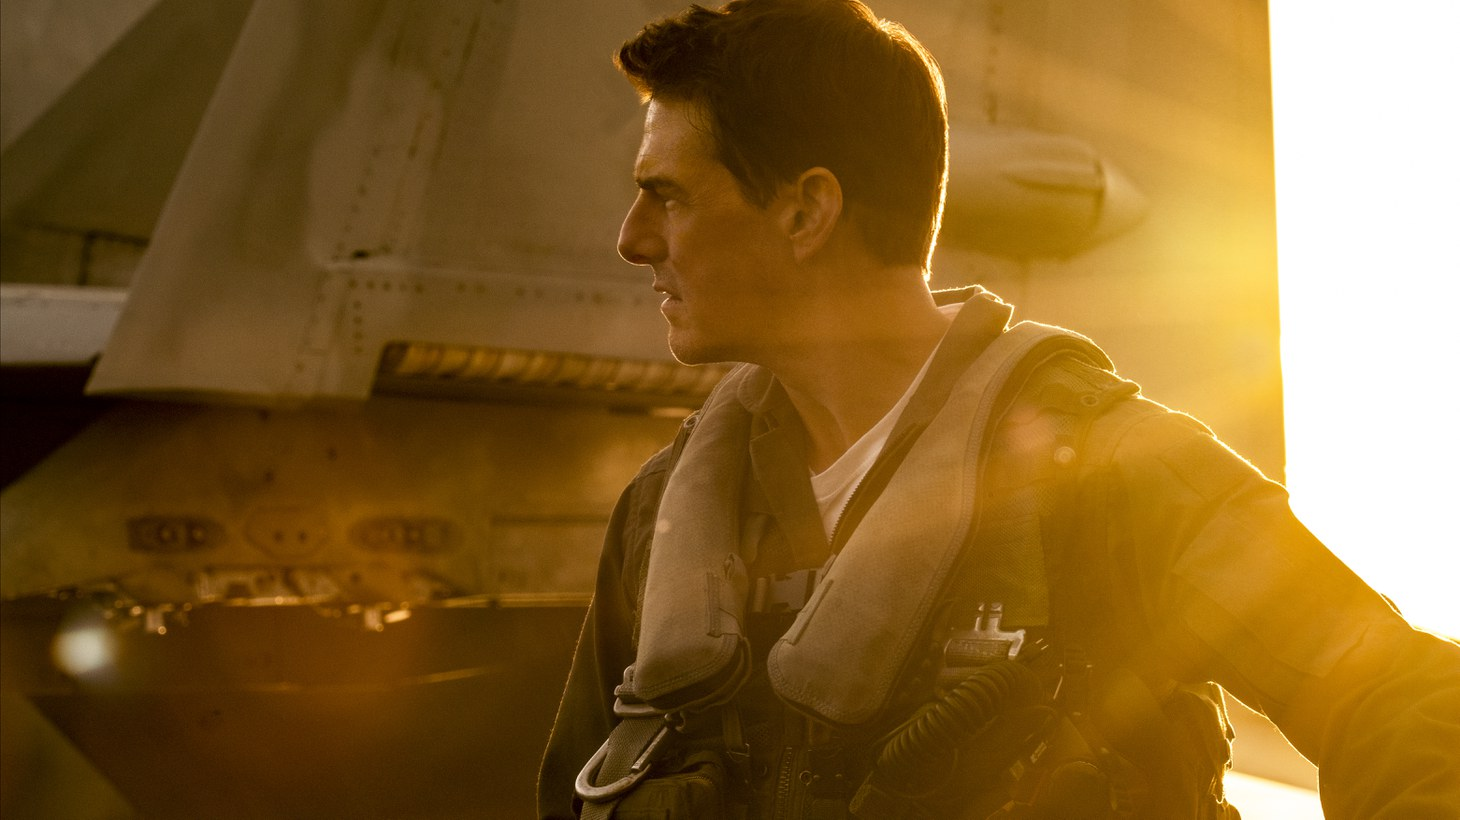 """Tom Cruise stars in """"Top Gun: Maverick."""" Paramount recently pushed the release of the film from November 19, 2021 to May 27, 2022."""